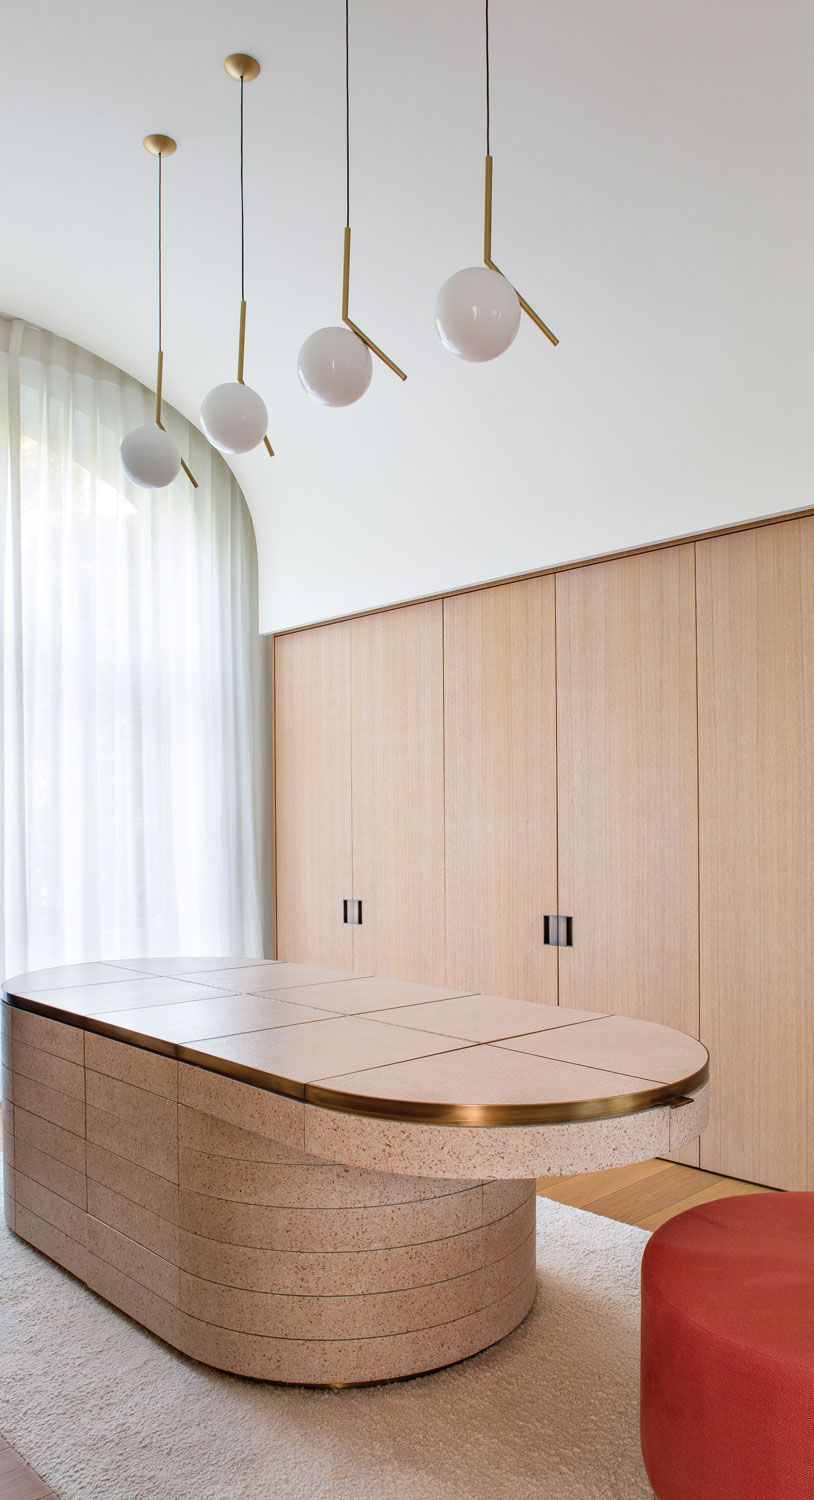 Pierre Yovanovitch Transforms A Brussels Townhouse For Major